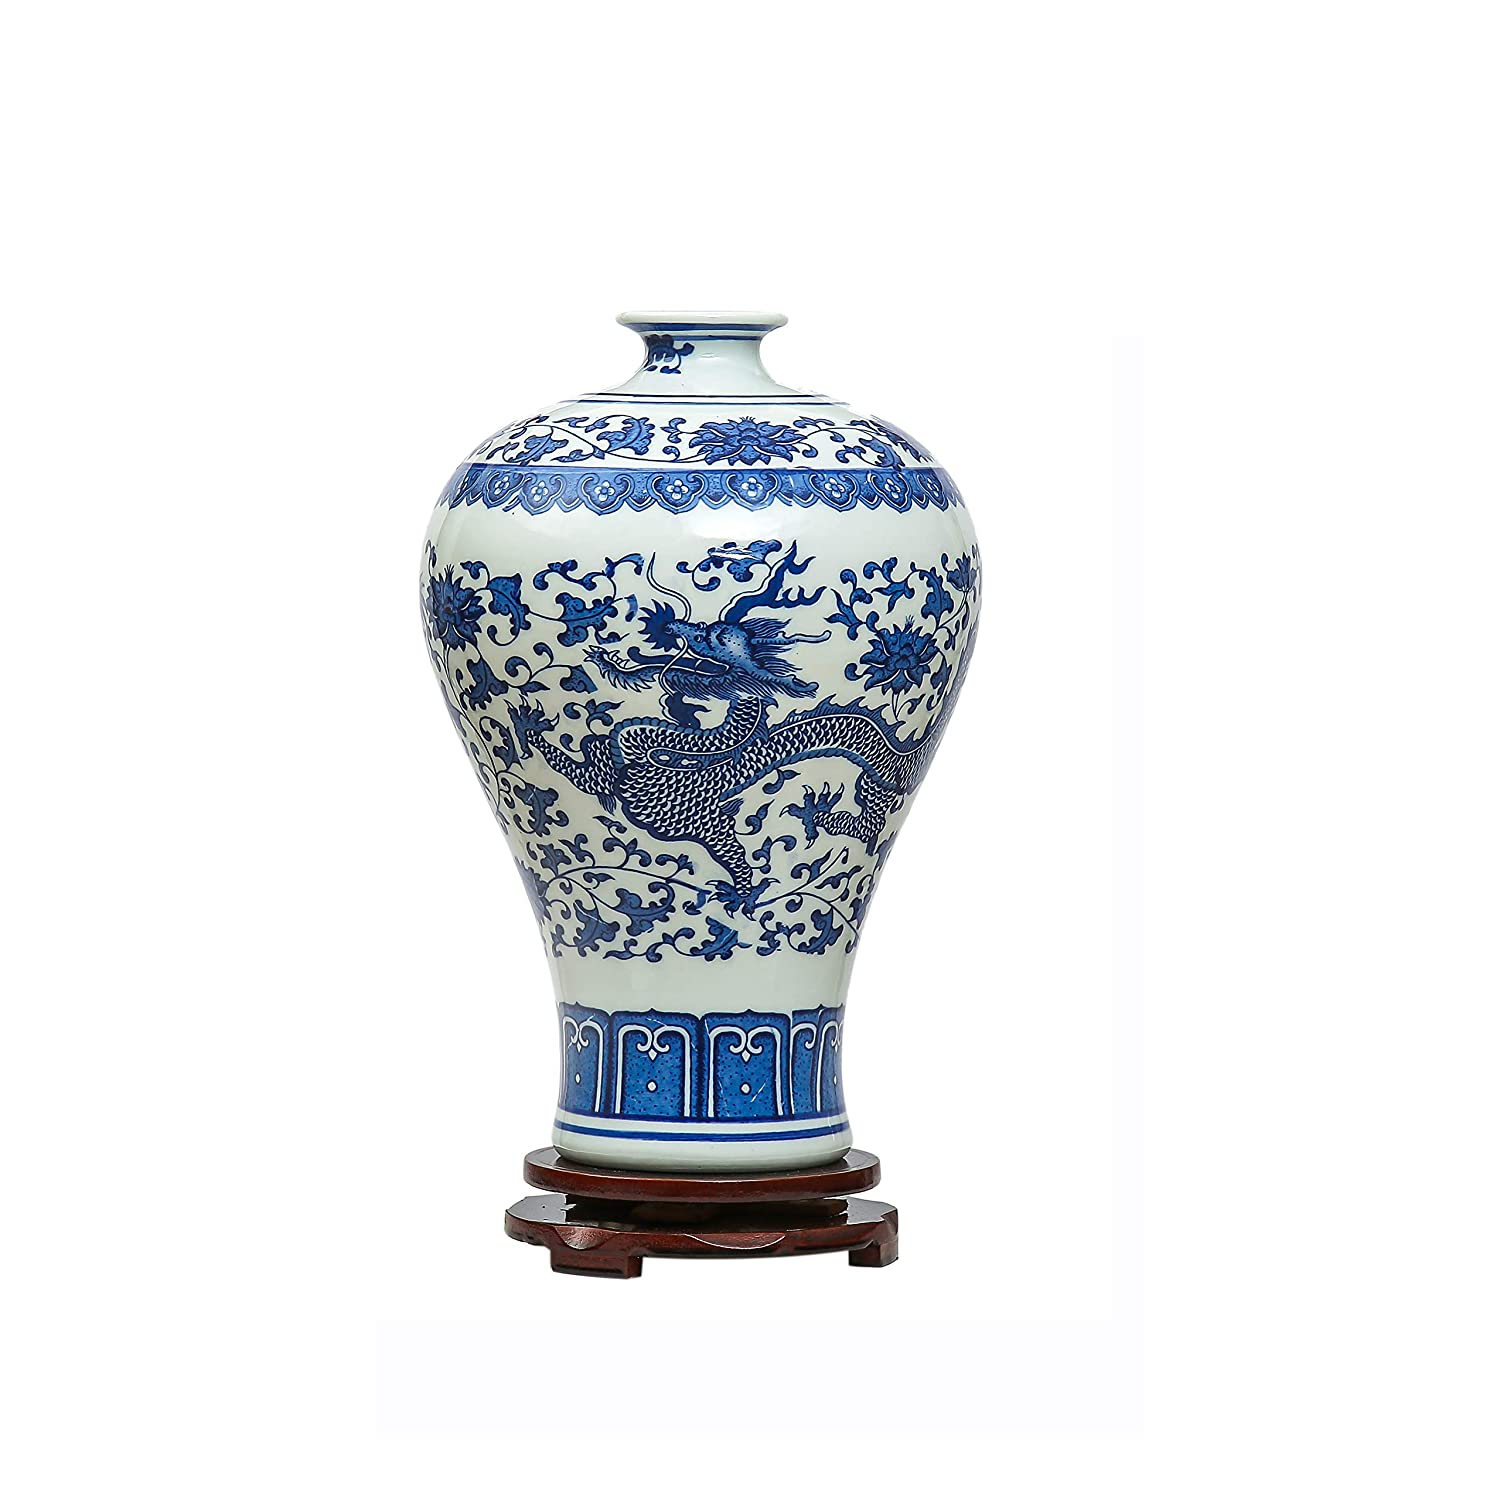 Chinese Dragon Vases,Jing Dezhen Blue and White Vase ,Vintage Ceramic Vase,Ideal Decoration For Home,Office,Party Ufingo